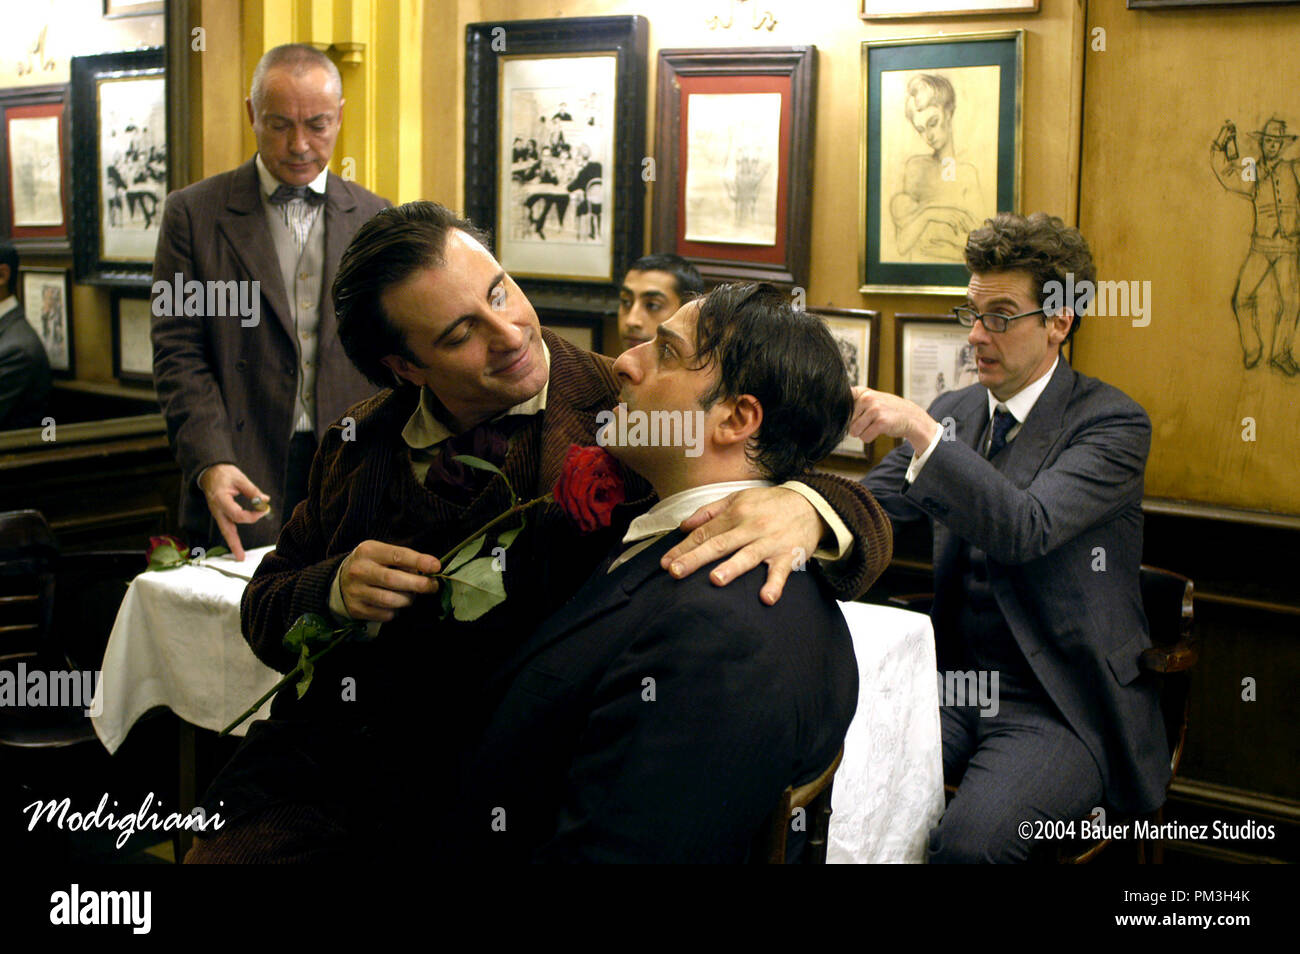 Film Still from 'Modigliani'  Andy Garcia, Omid Djalili Photo Credit: Cos Aelenei © 2004 Bauer Martinez Studios  File Reference # 30735851THA  For Editorial Use Only -  All Rights Reserved - Stock Image